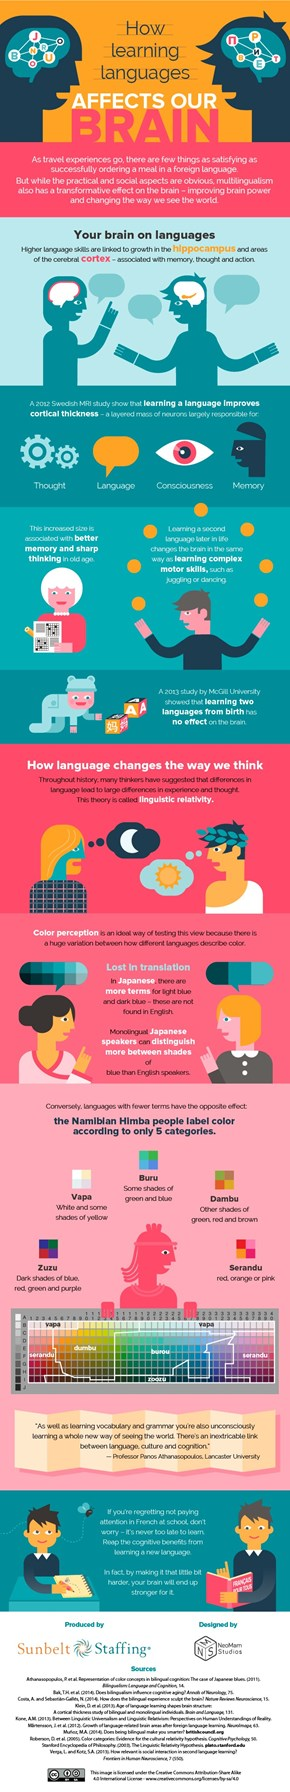 How Learning Languages Affects Our Brain